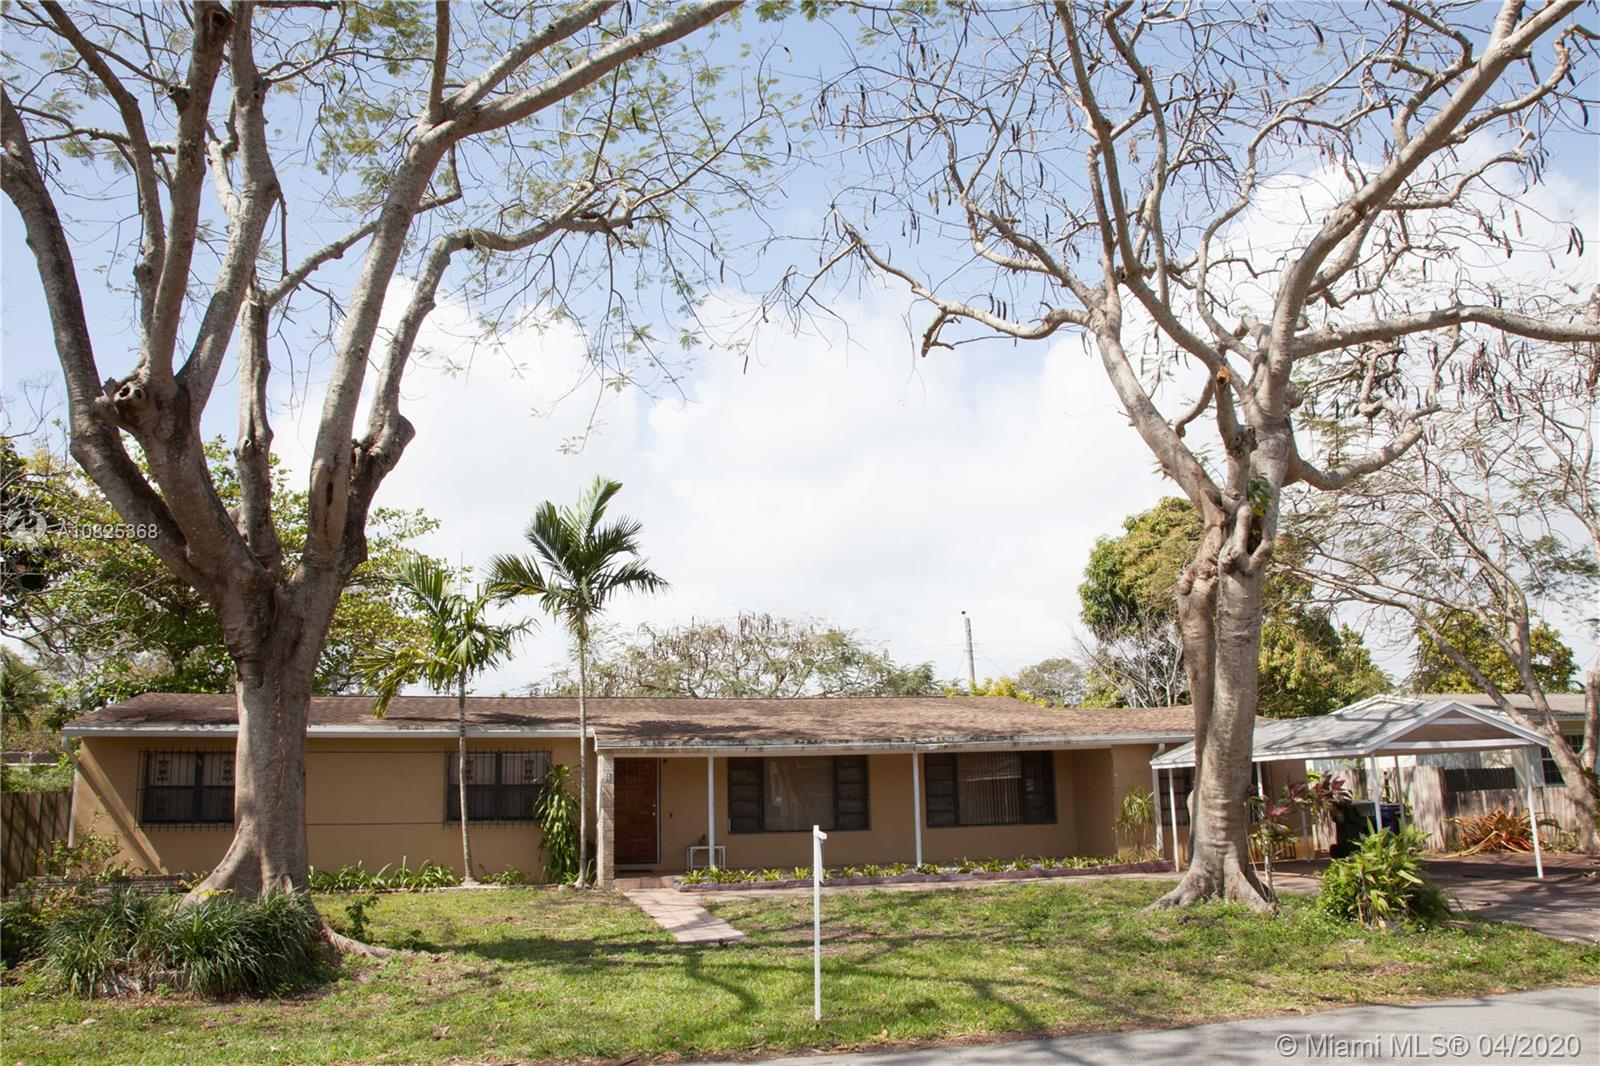 3/2 Main home, 1/1 guest house/In laws quarters with private entrance, tank less water heater, 10,000 square foot fenced lot.